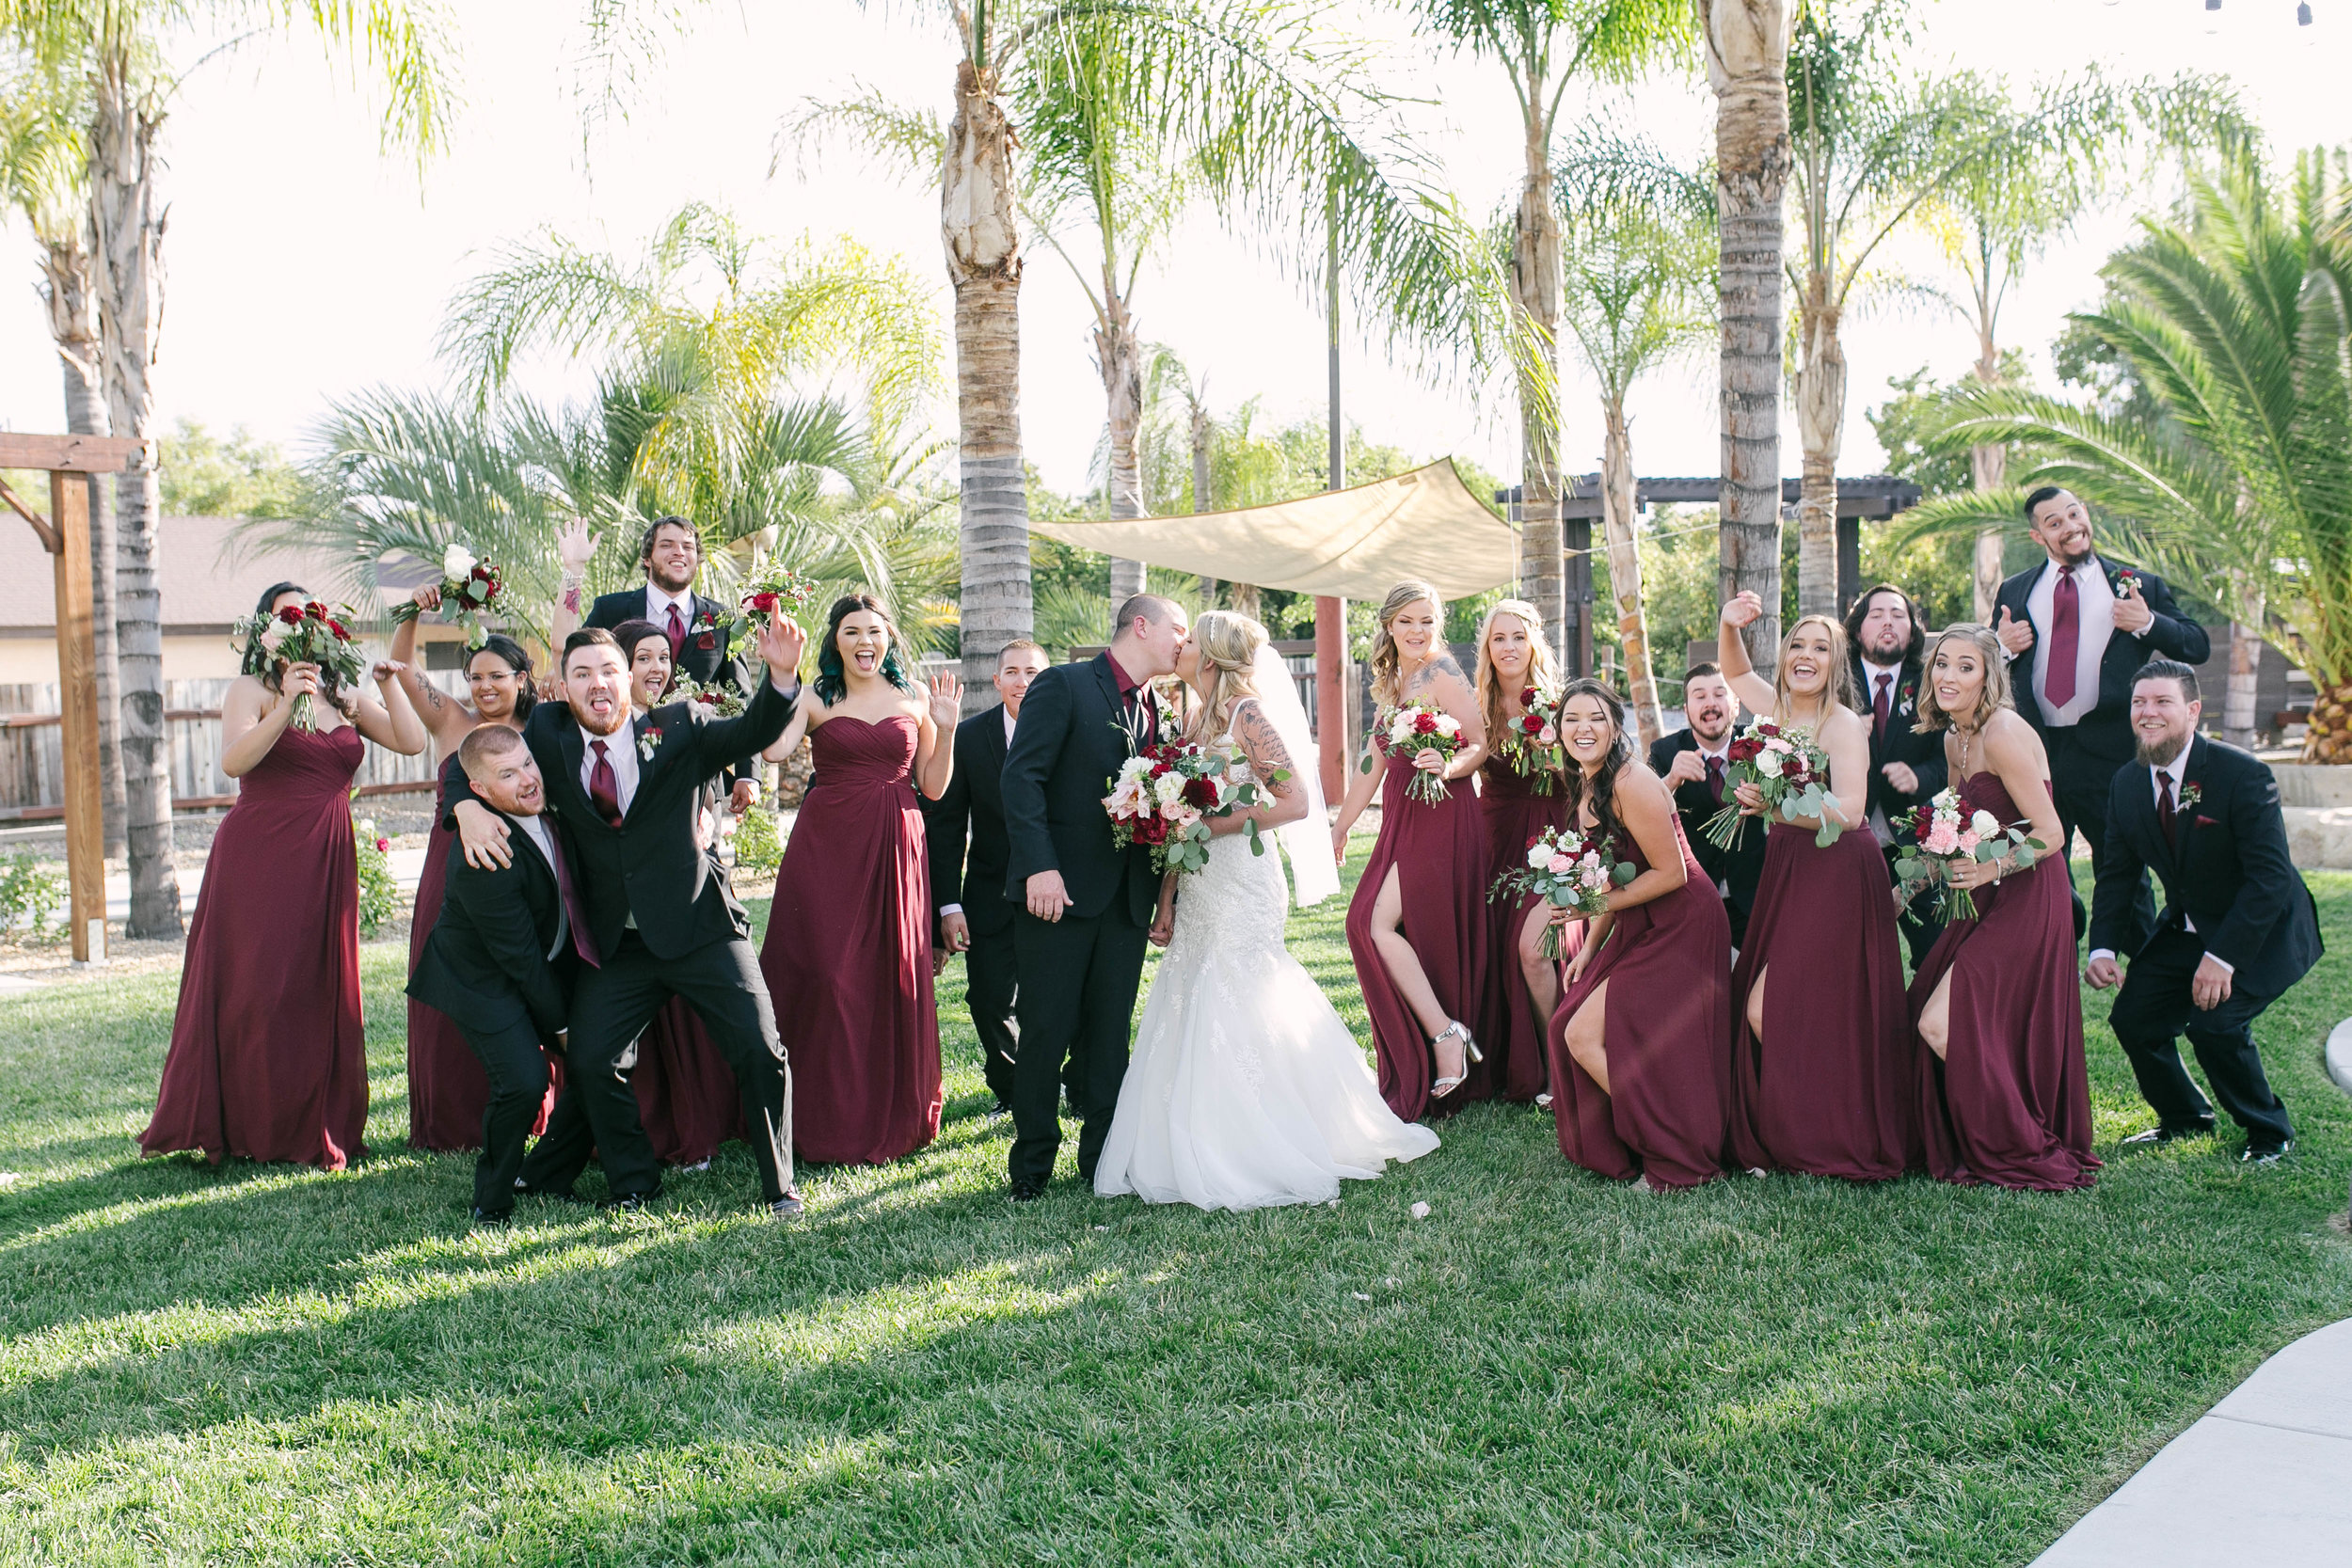 When you have a large wedding party, that just wants to have fun, you have fun